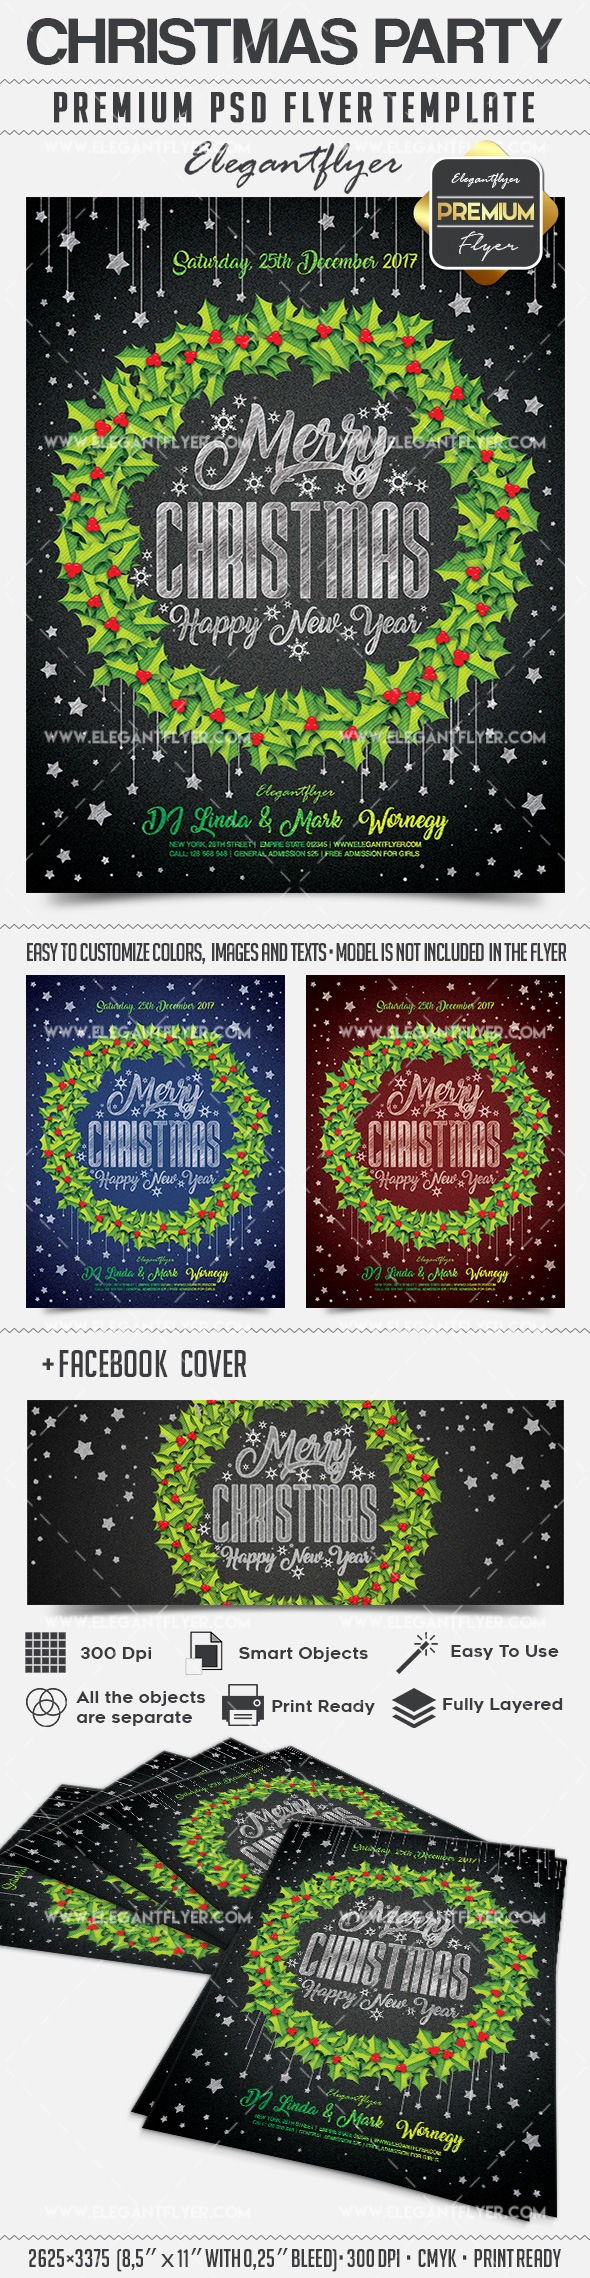 christmas party flyer psd template facebook cover by christmas party flyer psd template facebook cover